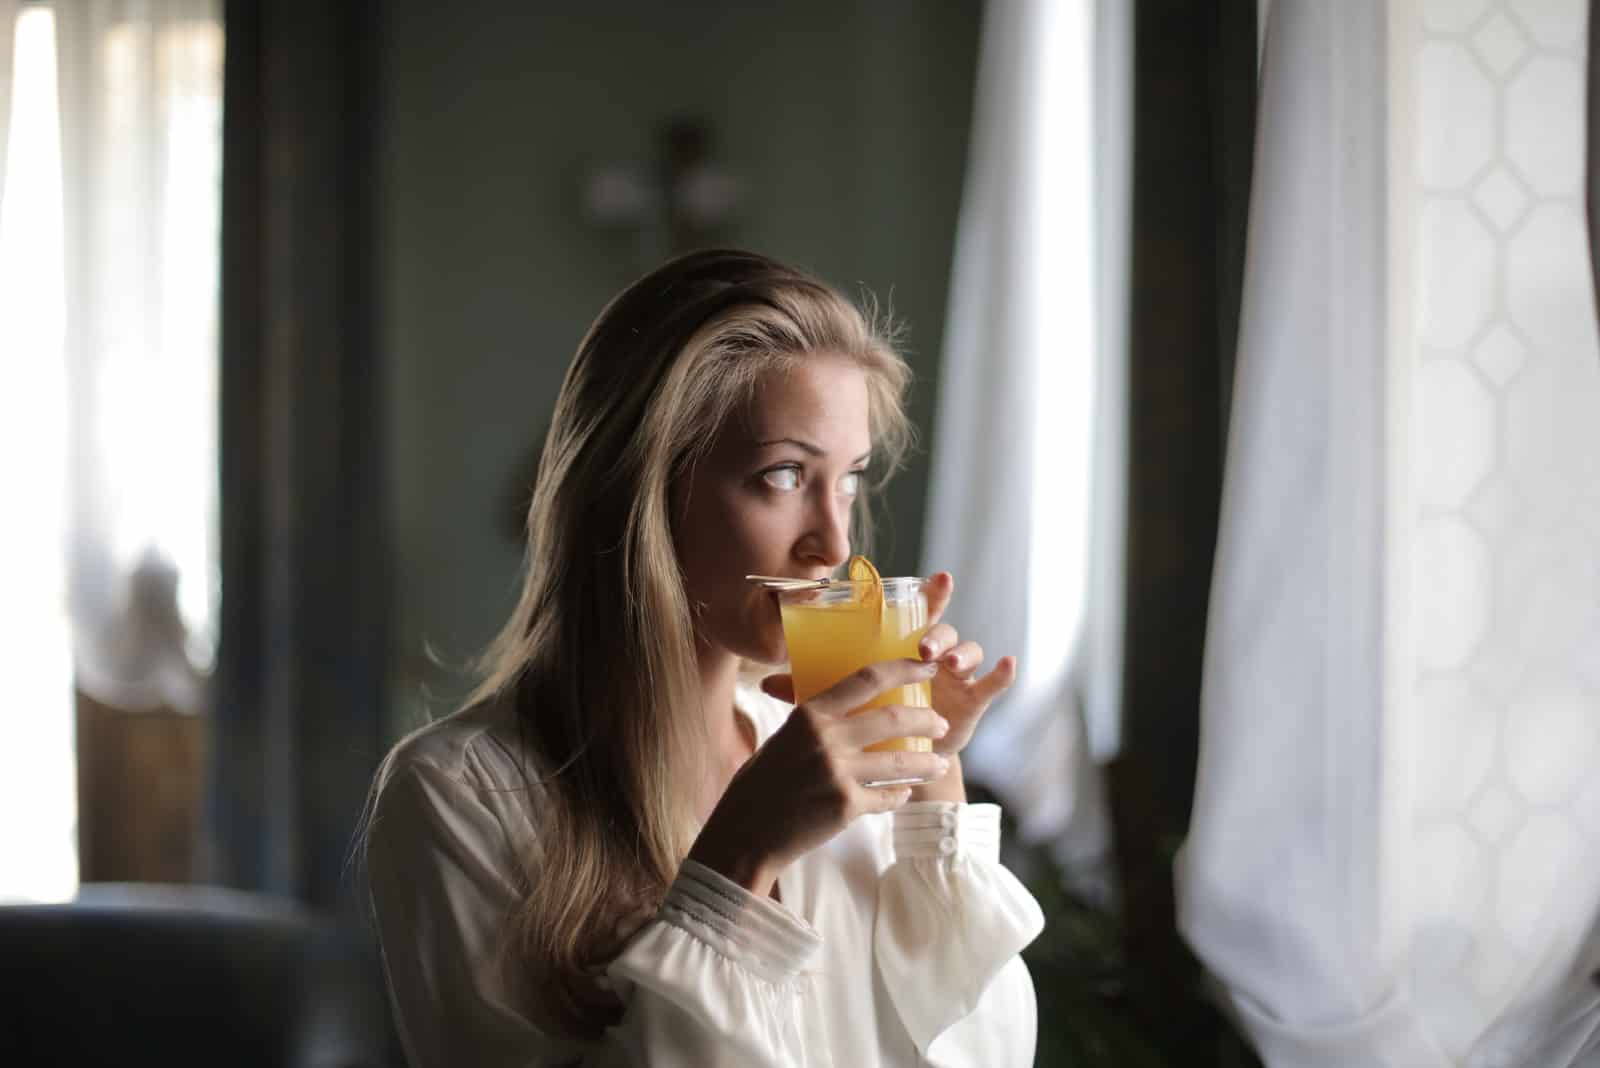 woman drinking orange juice while looking through window